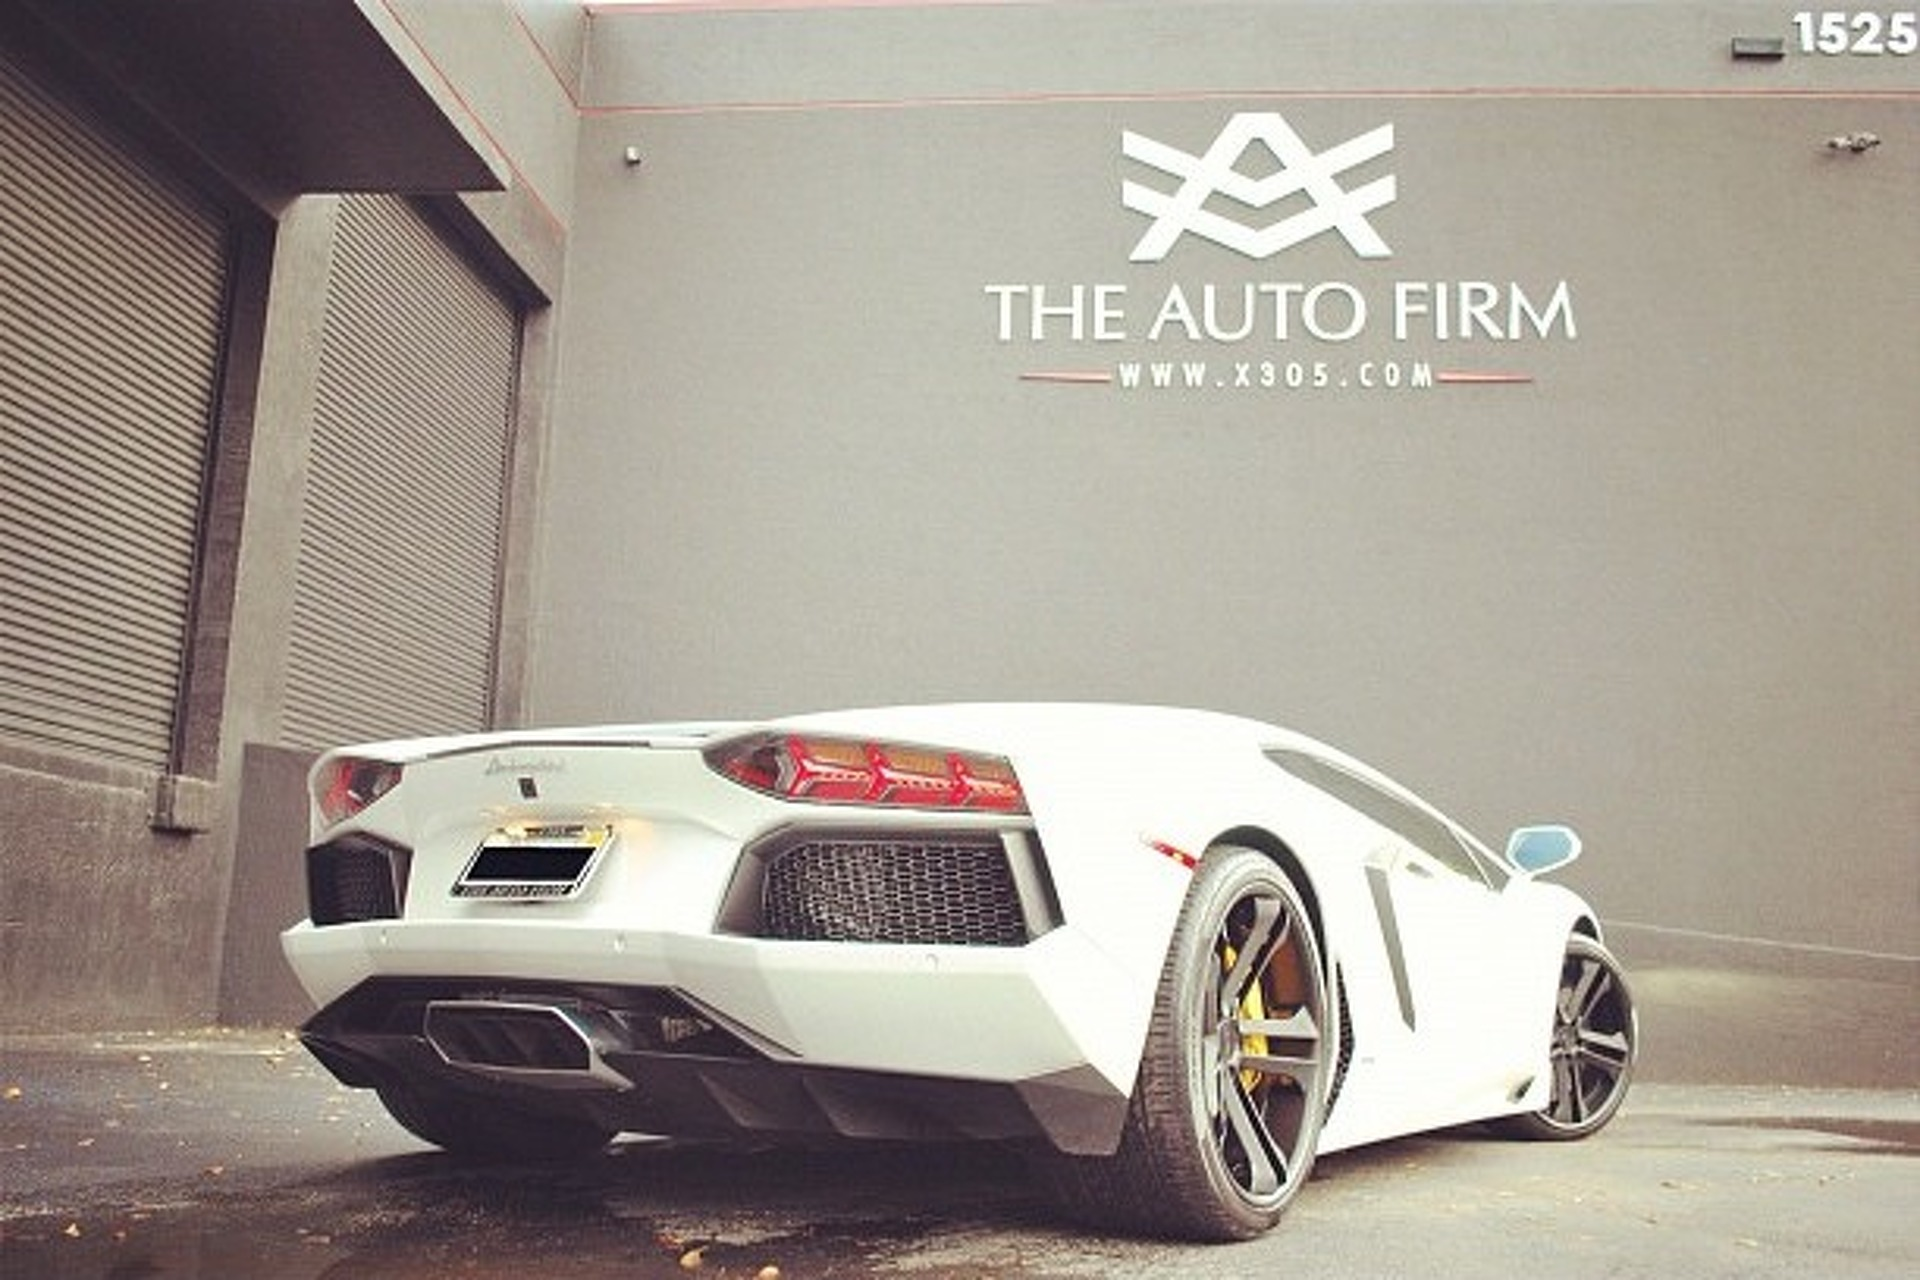 Unemployed Chad Johnson Sports All New $375K Lamborghini Aventador